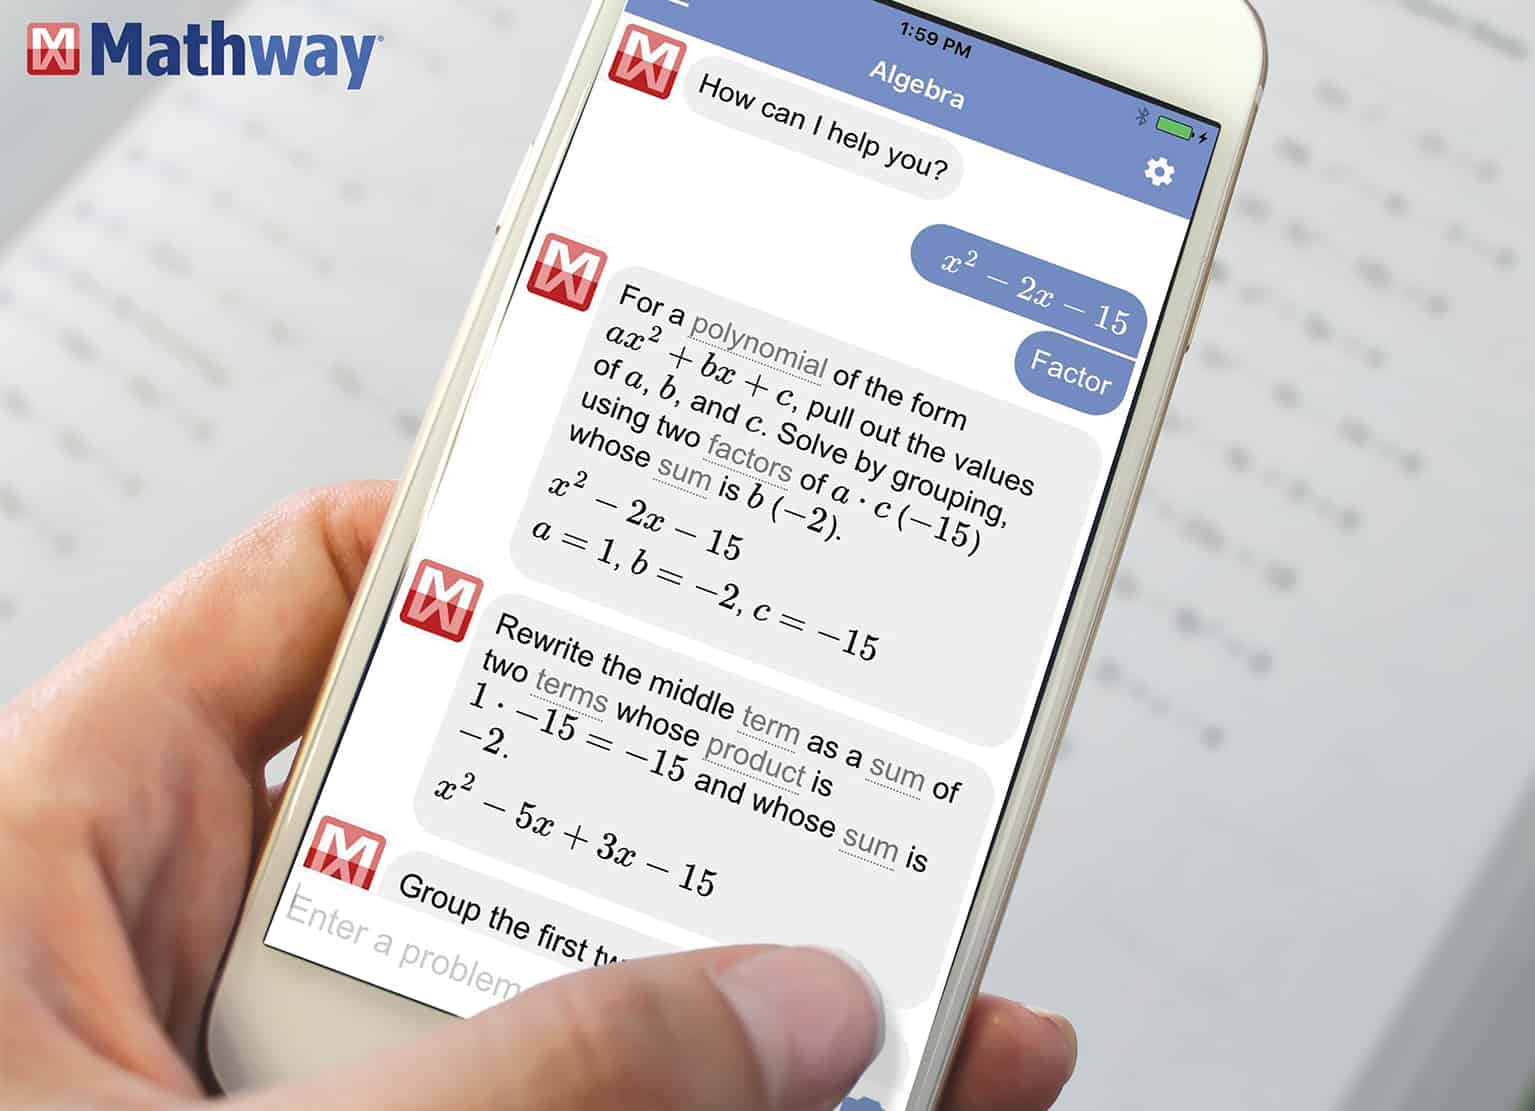 Mathway math app - Learning site to help high schoolers with math